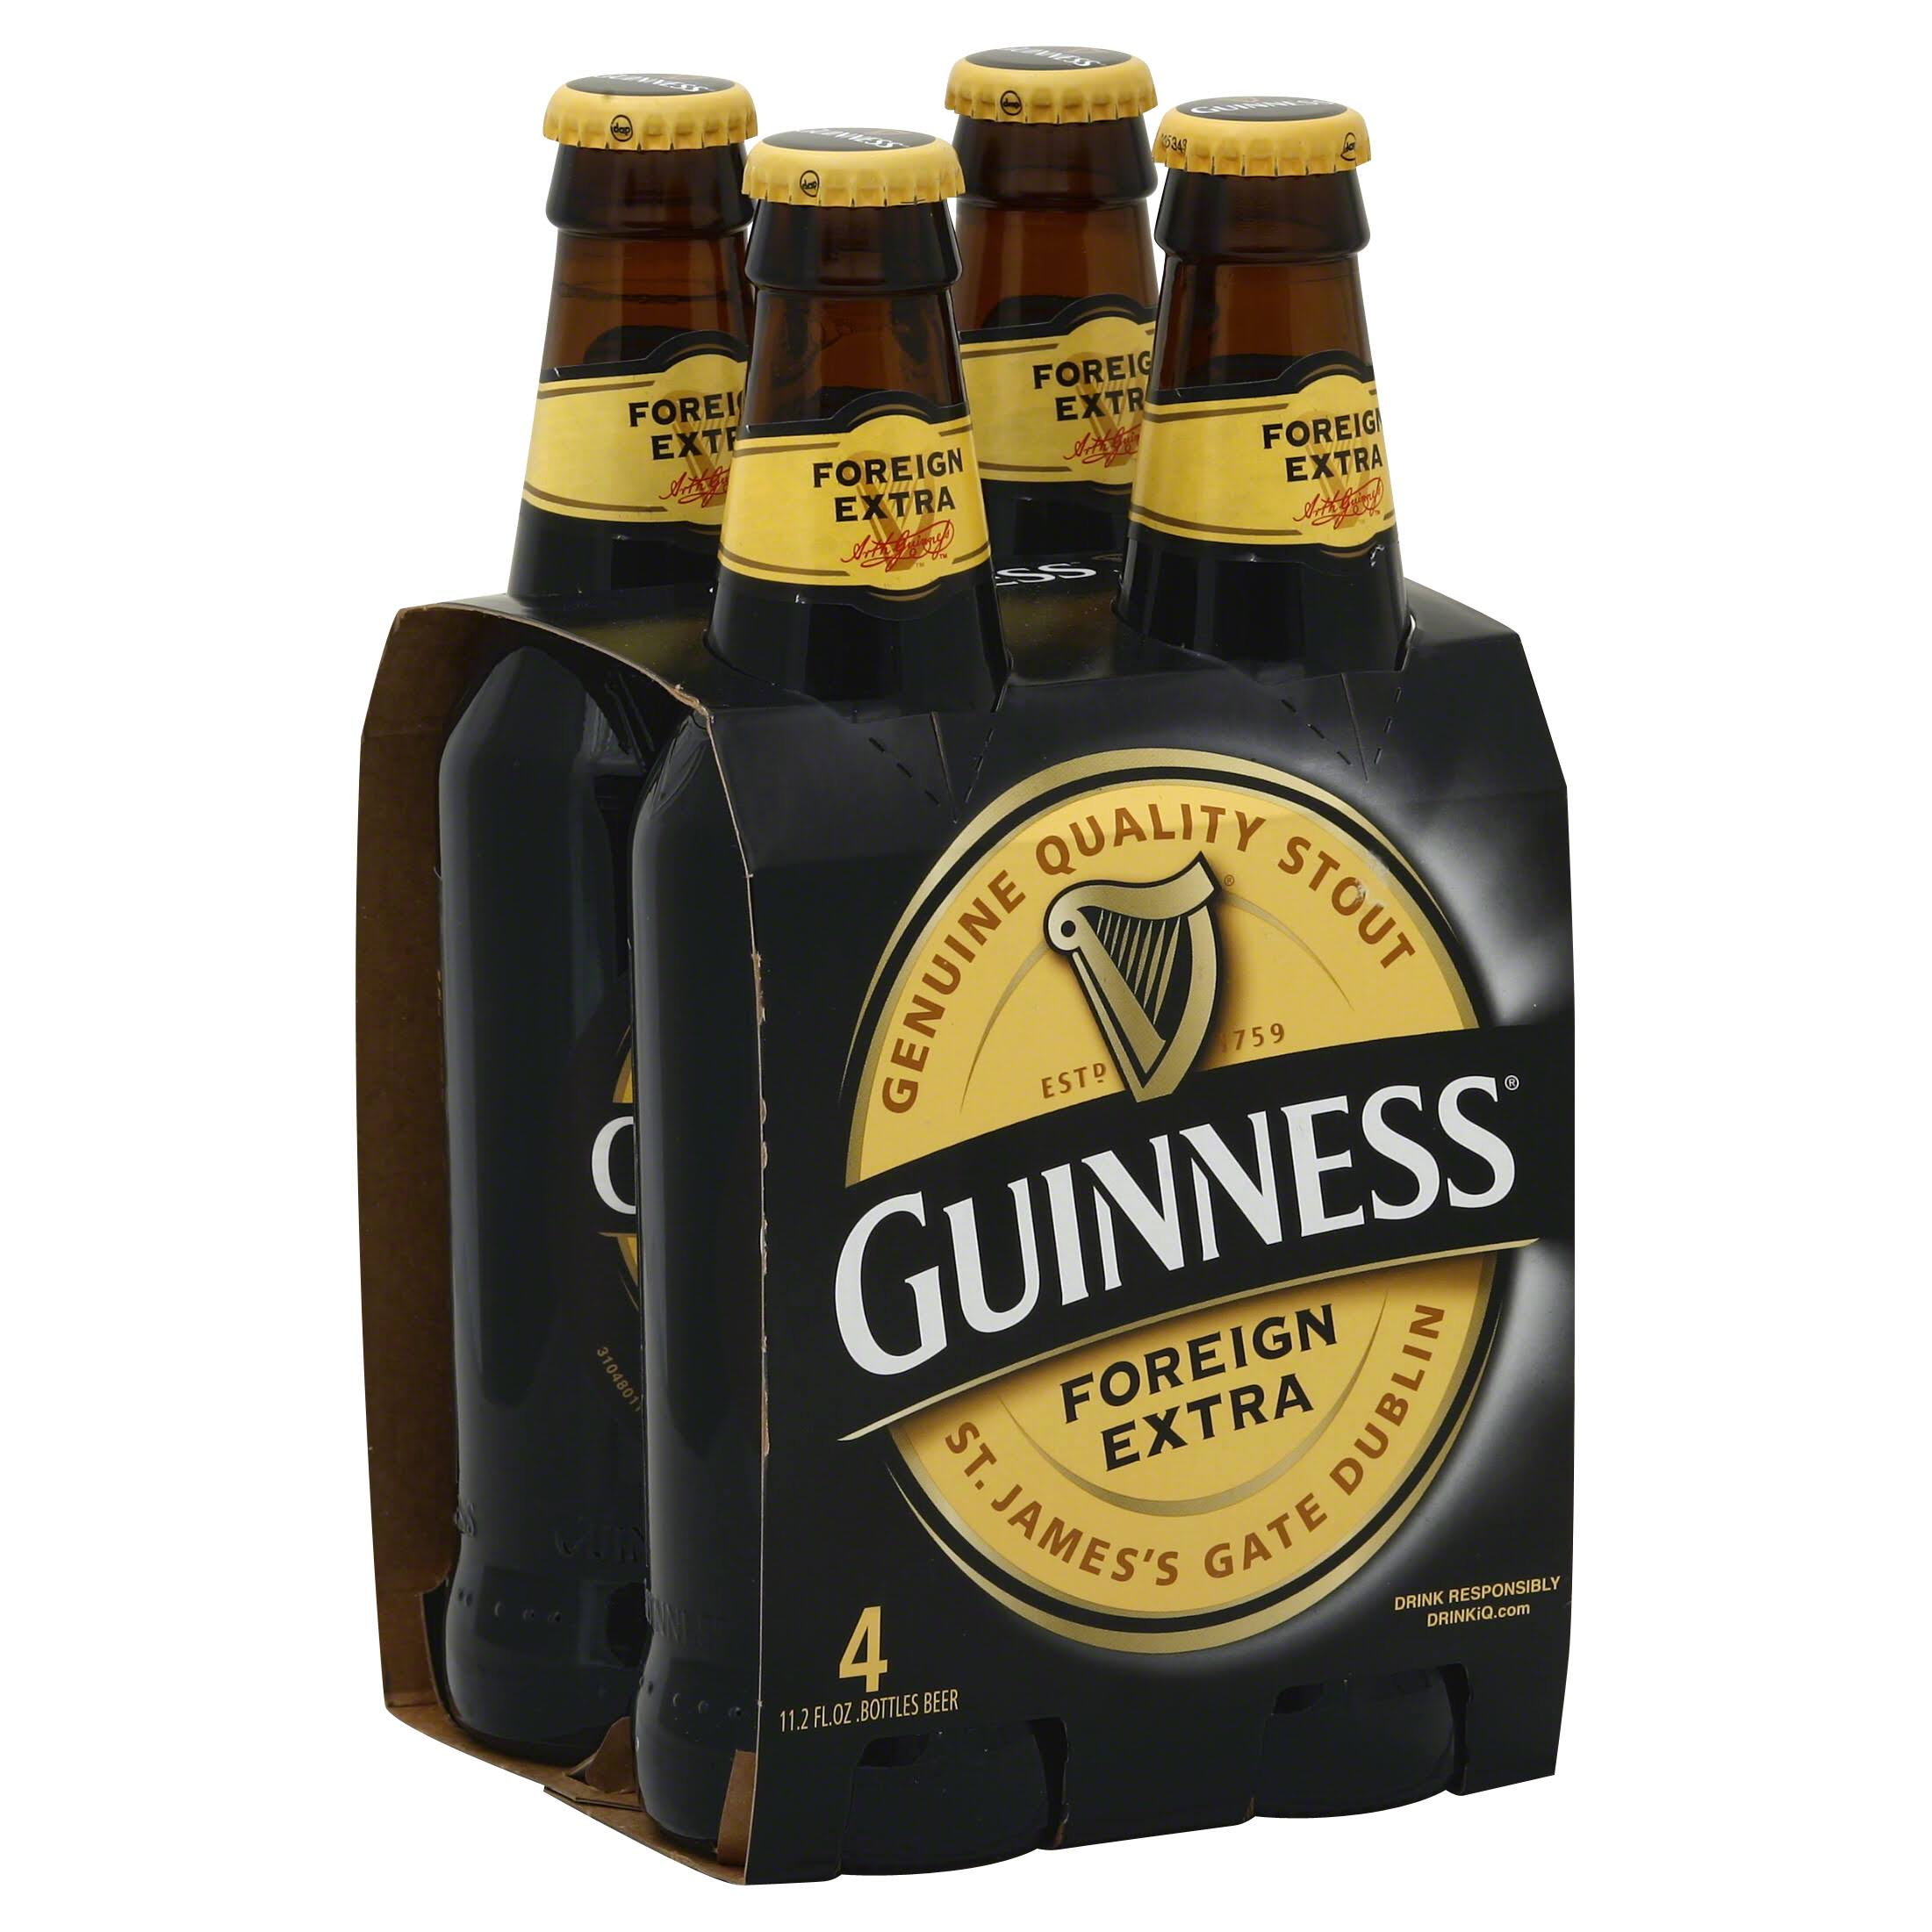 Guinness Beer, Foreign Extra - 4 pack, 11.2 fl oz bottles